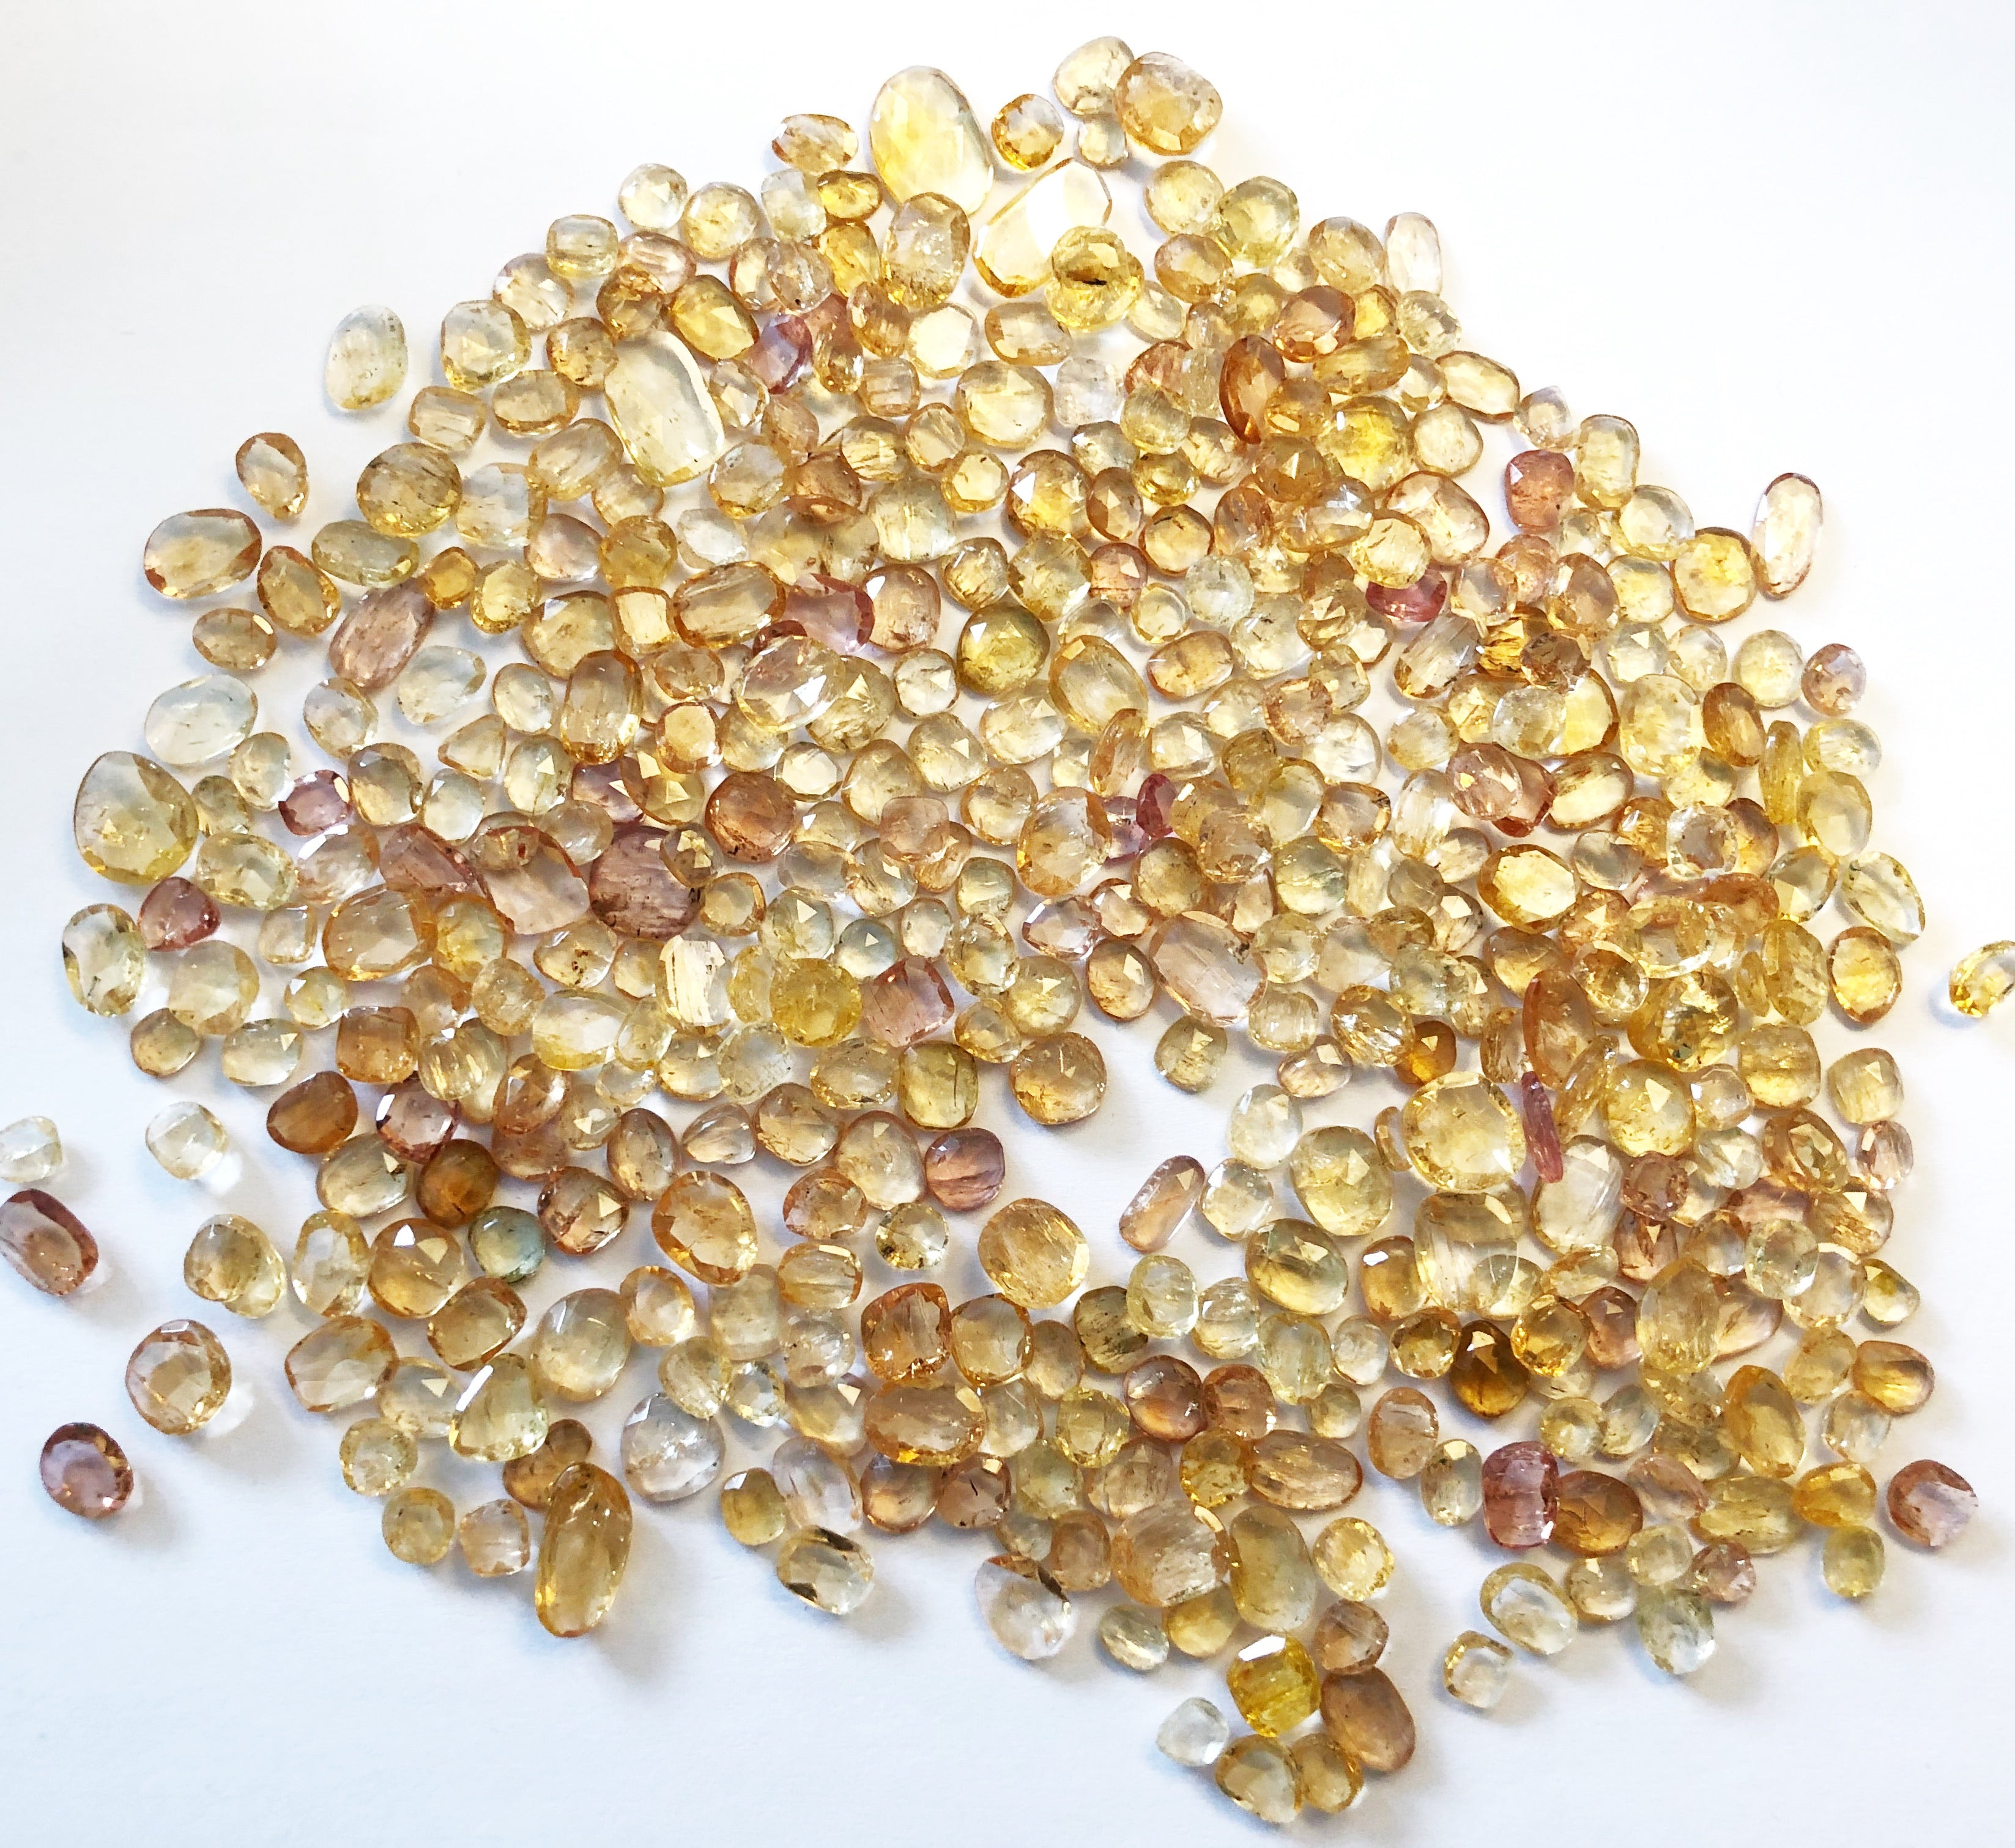 Imperial Topaz Organic Shape Rose Cuts Mix 5-6/6-8MM